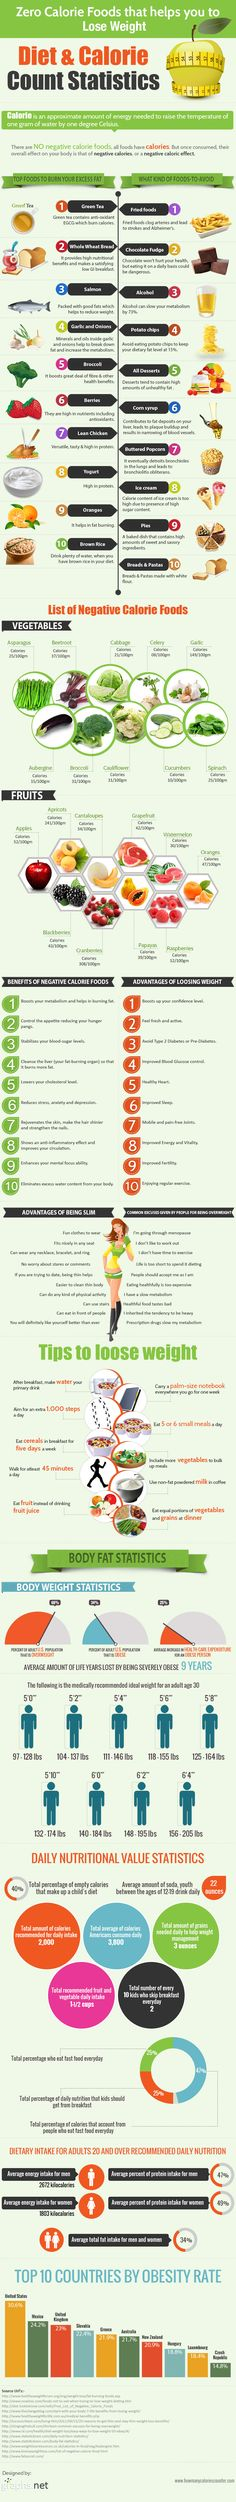 Zero Calorie Foods Infographic ~~ That Helps You To Lose Weight && 5 Simple Steps to Lose 20 Pounds